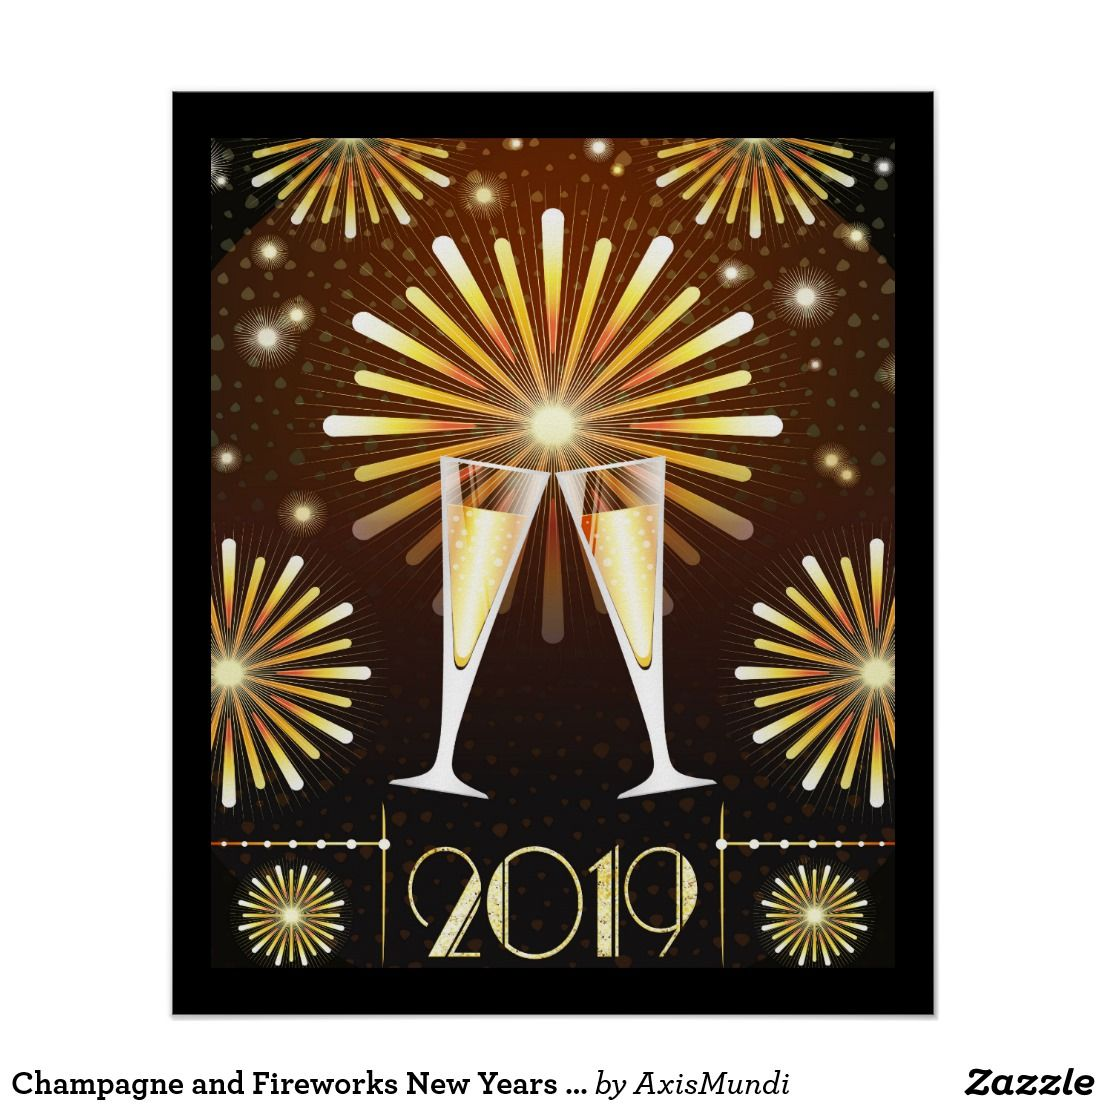 Champagne and Fireworks New Years Eve 2019 Poster Zazzle